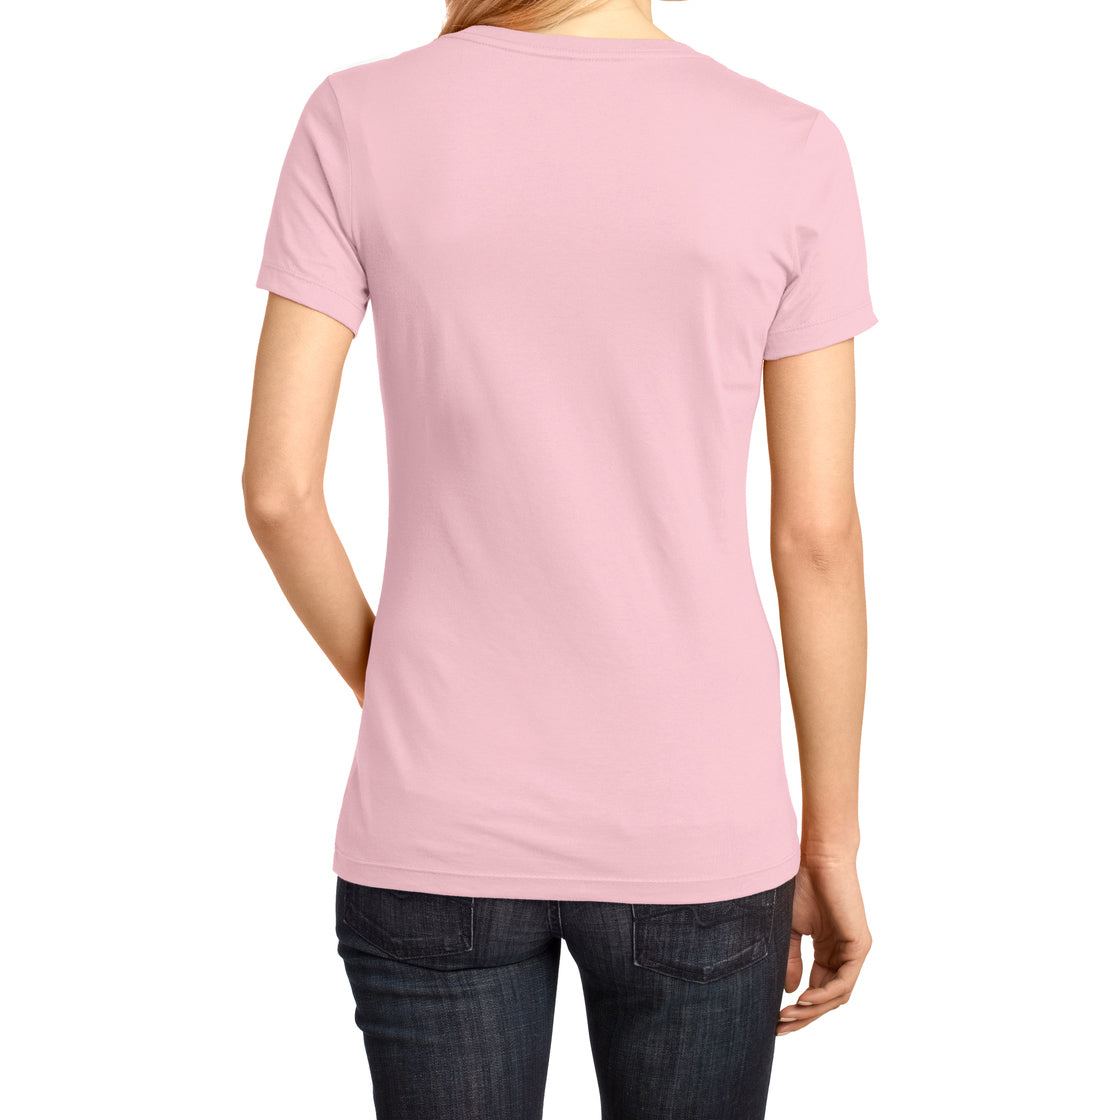 Ladies Perfect Weight V-Neck Tee - Light Pink - Back